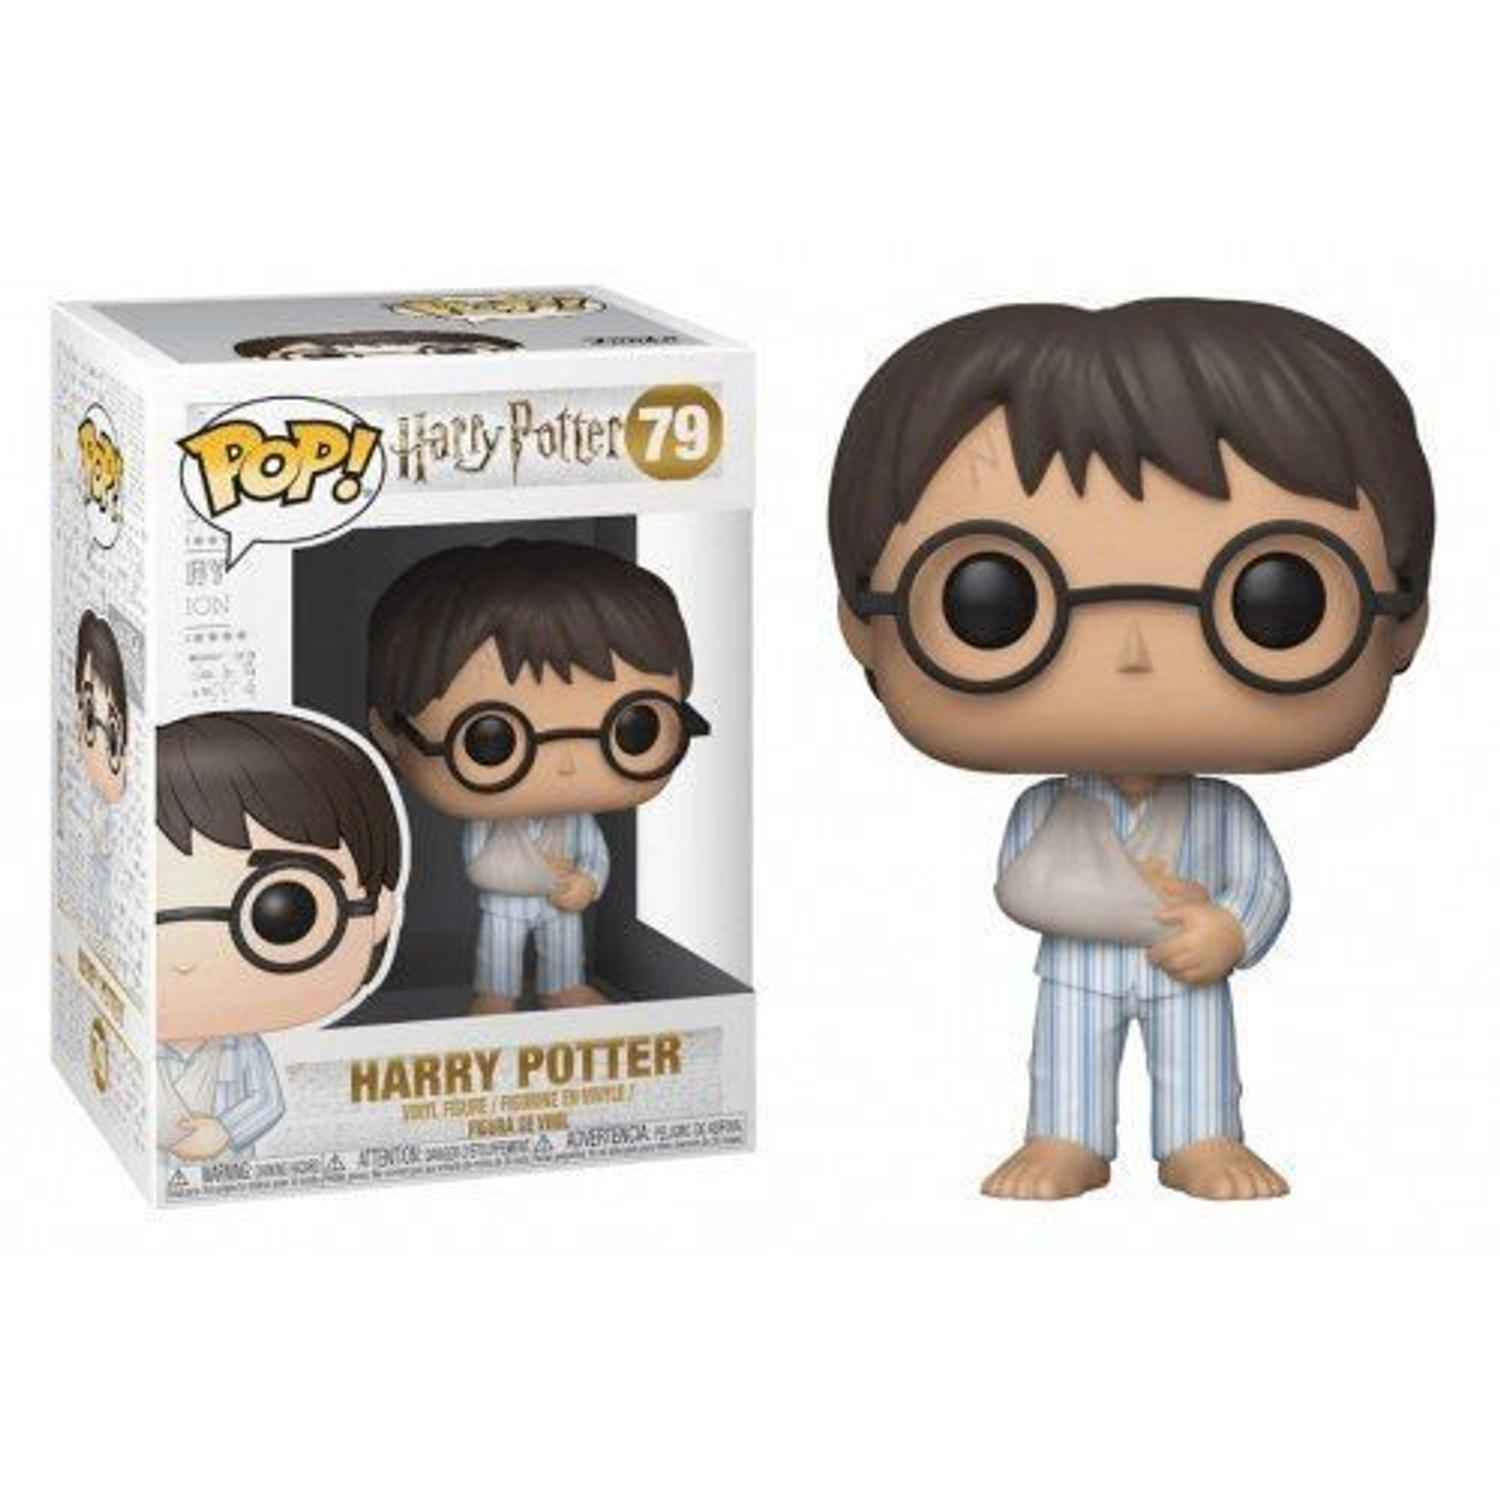 POP! FUNKO - HARRY POTTER - HARRY POTTER COM BRAÇO ENFAIXADO